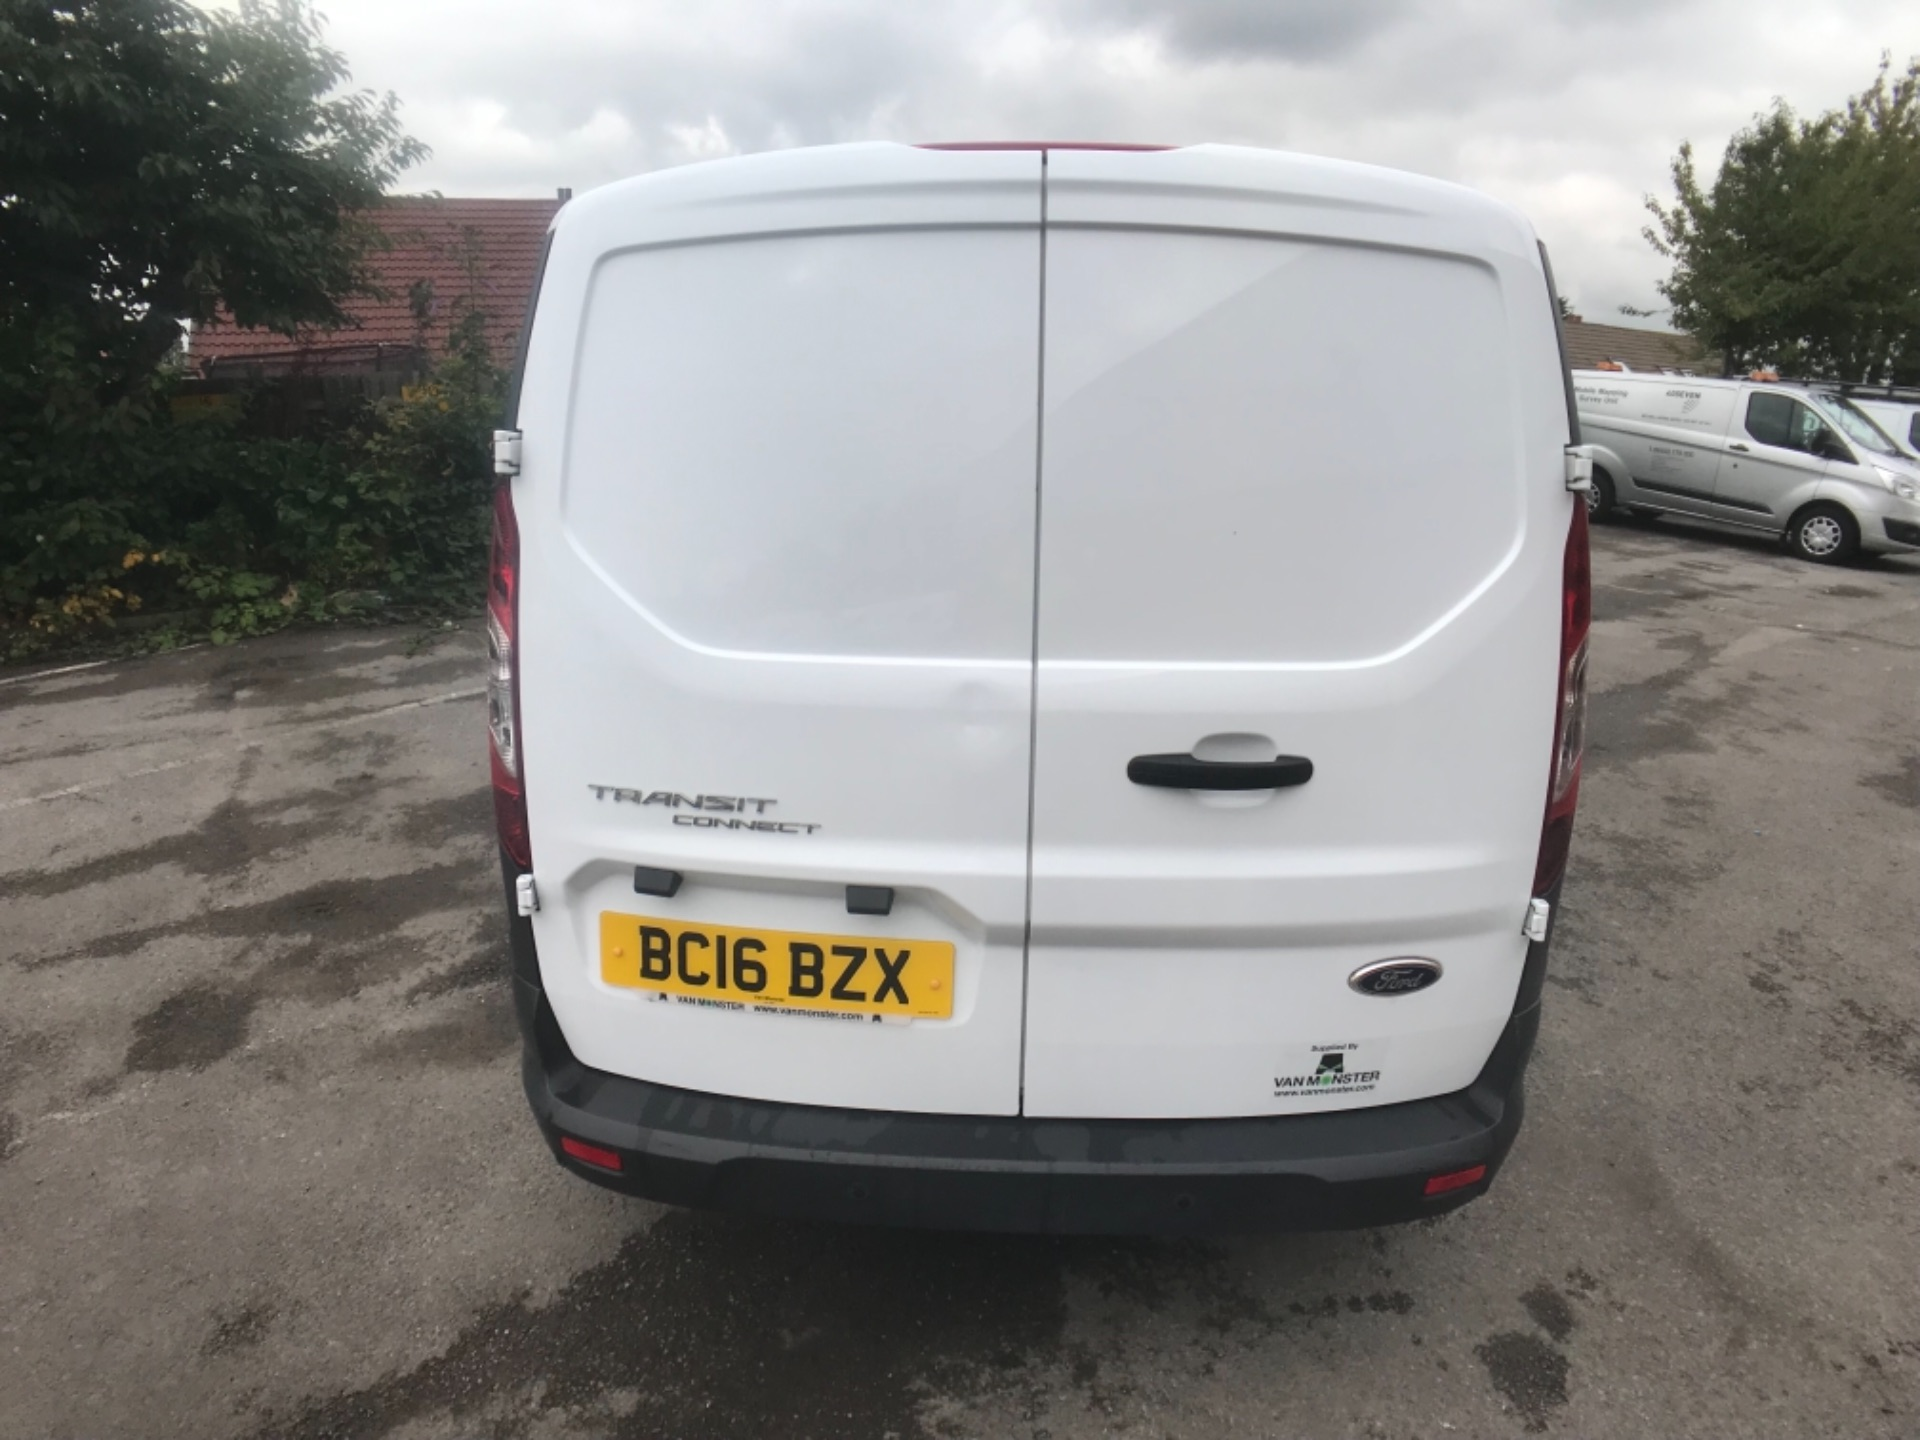 2016 Ford Transit Connect  200 L1 Diesel 1.6 TDCi 75PS Van EURO 5 (BC16BZX) Image 6